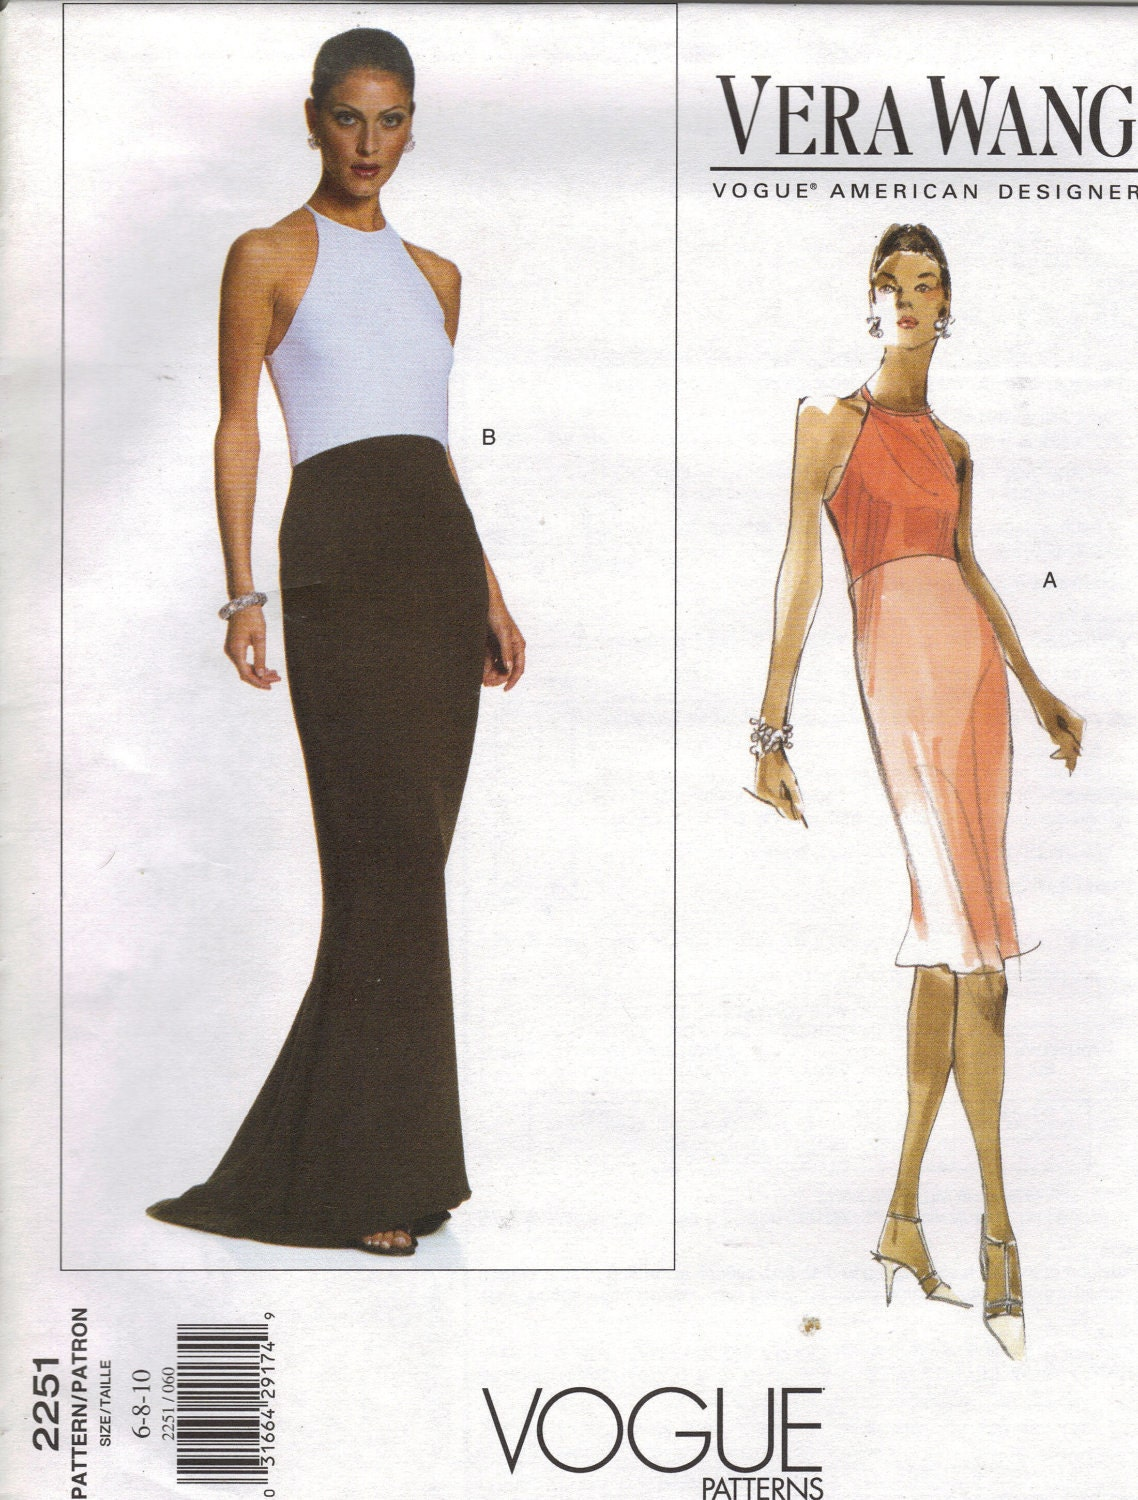 Vera Wang cocktail or evening dress pattern - Vogue 2251